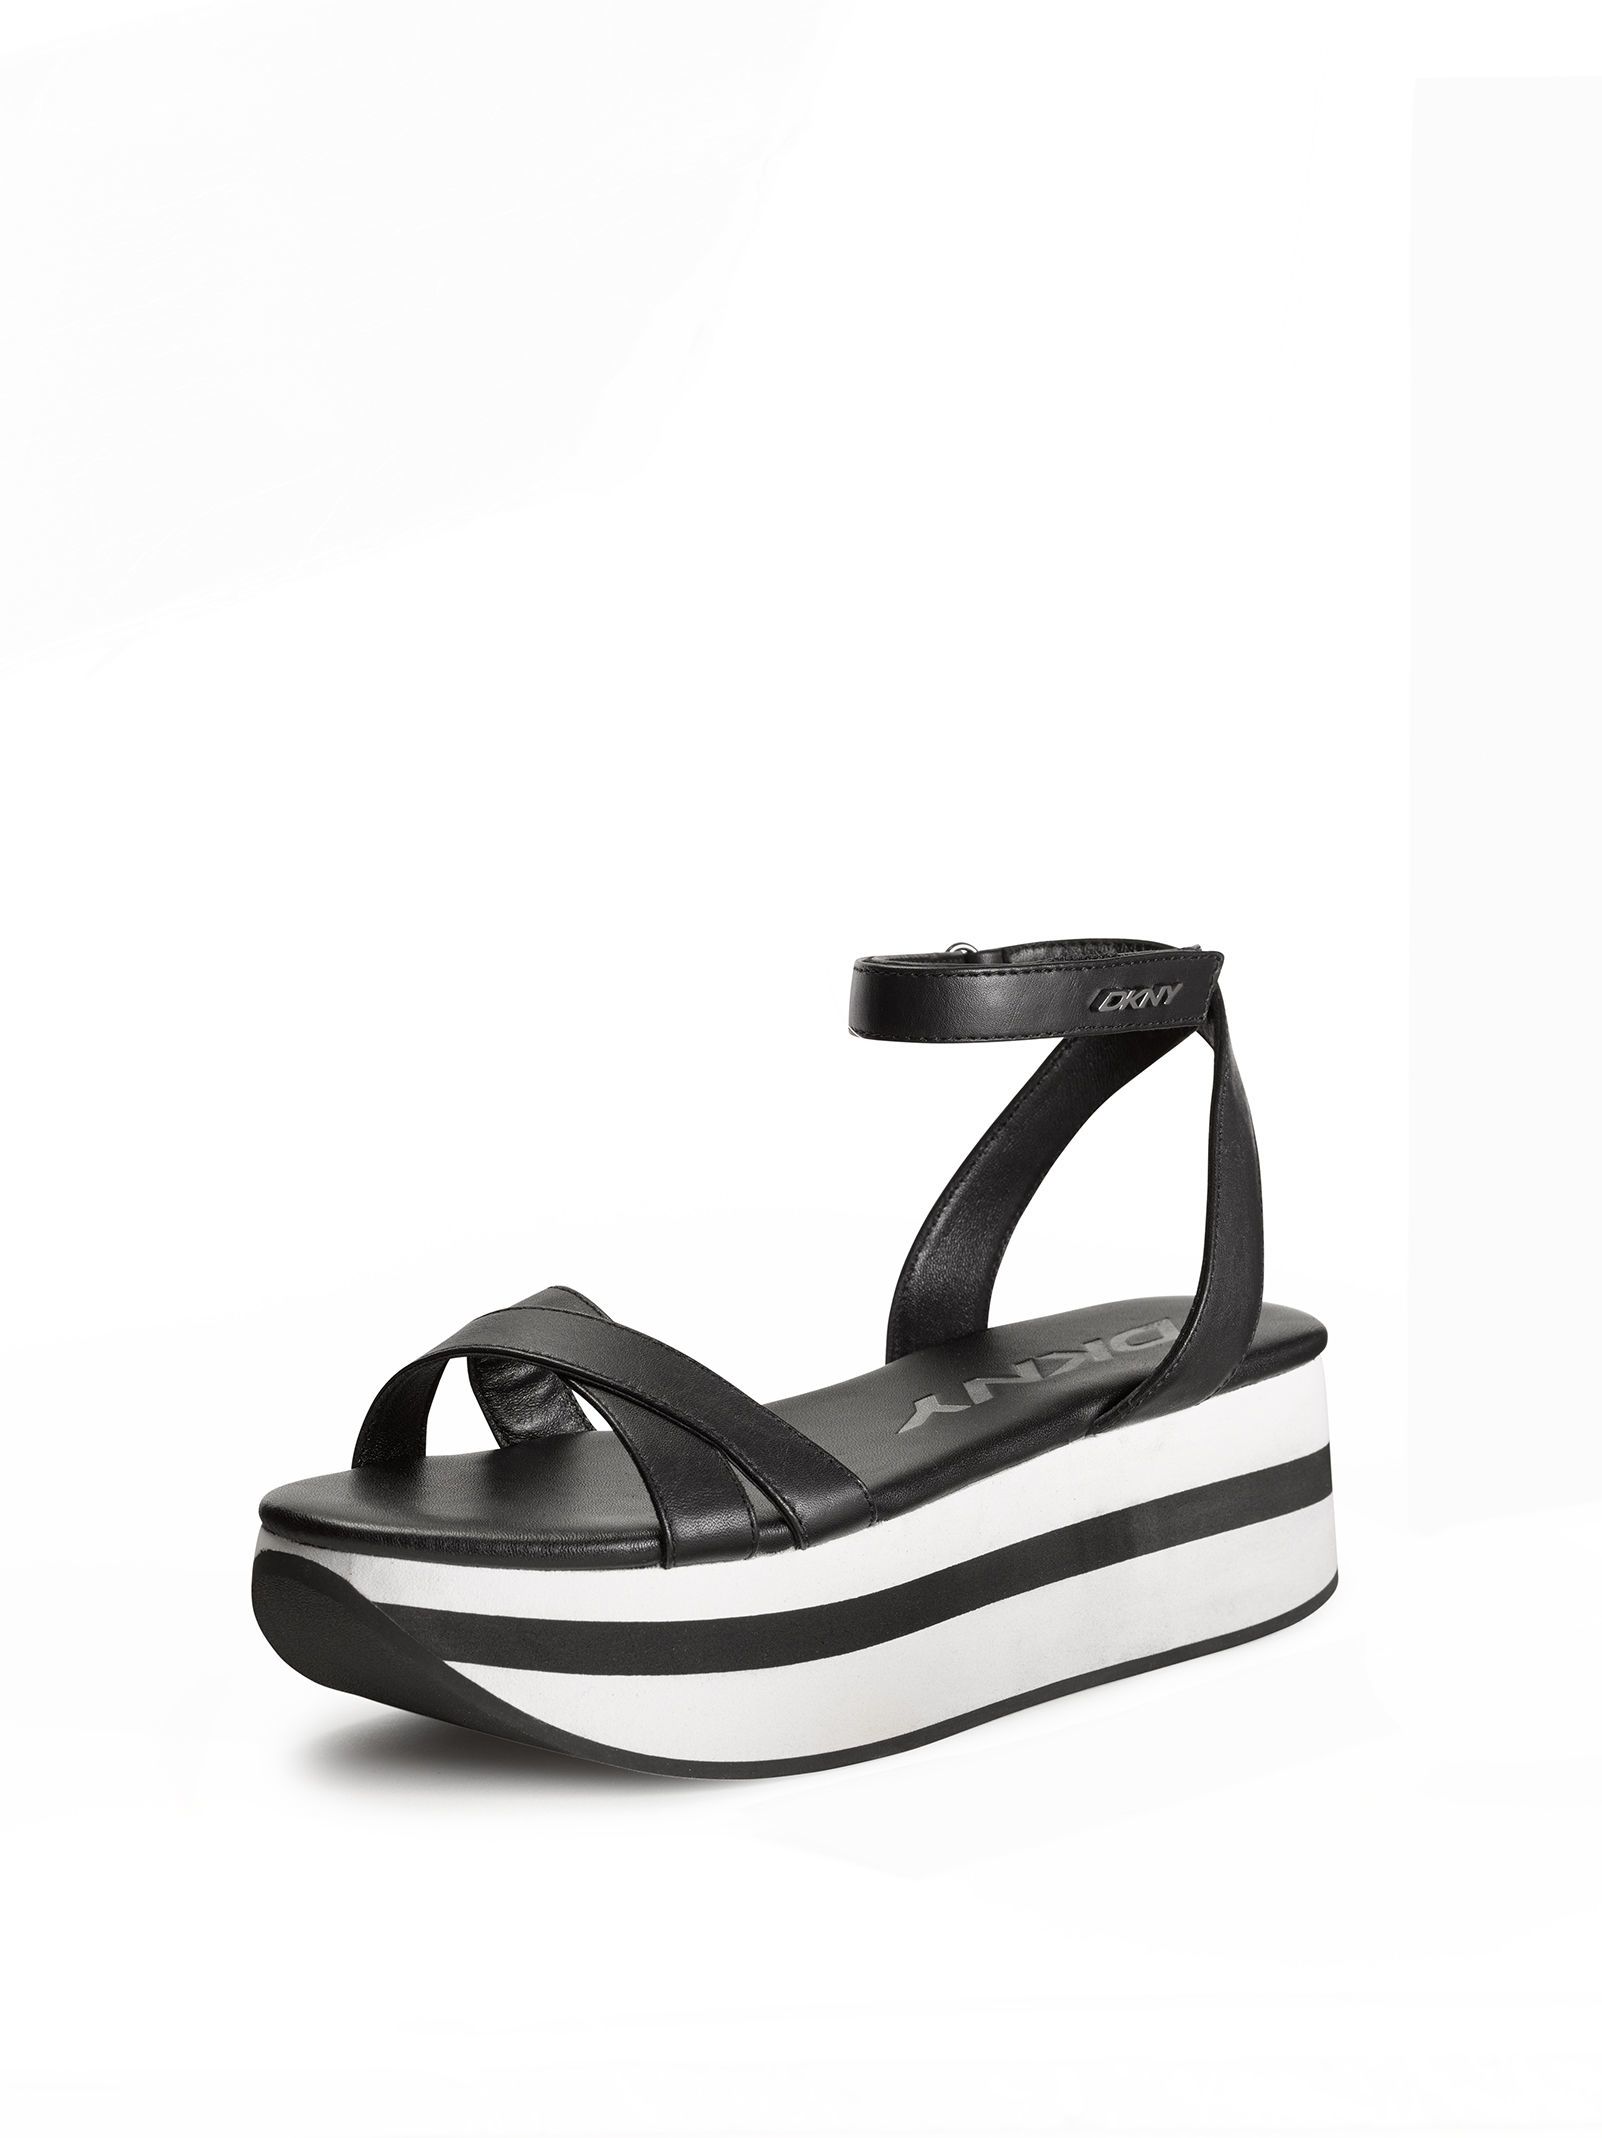 lyst dkny valerie leather platform sandal in black